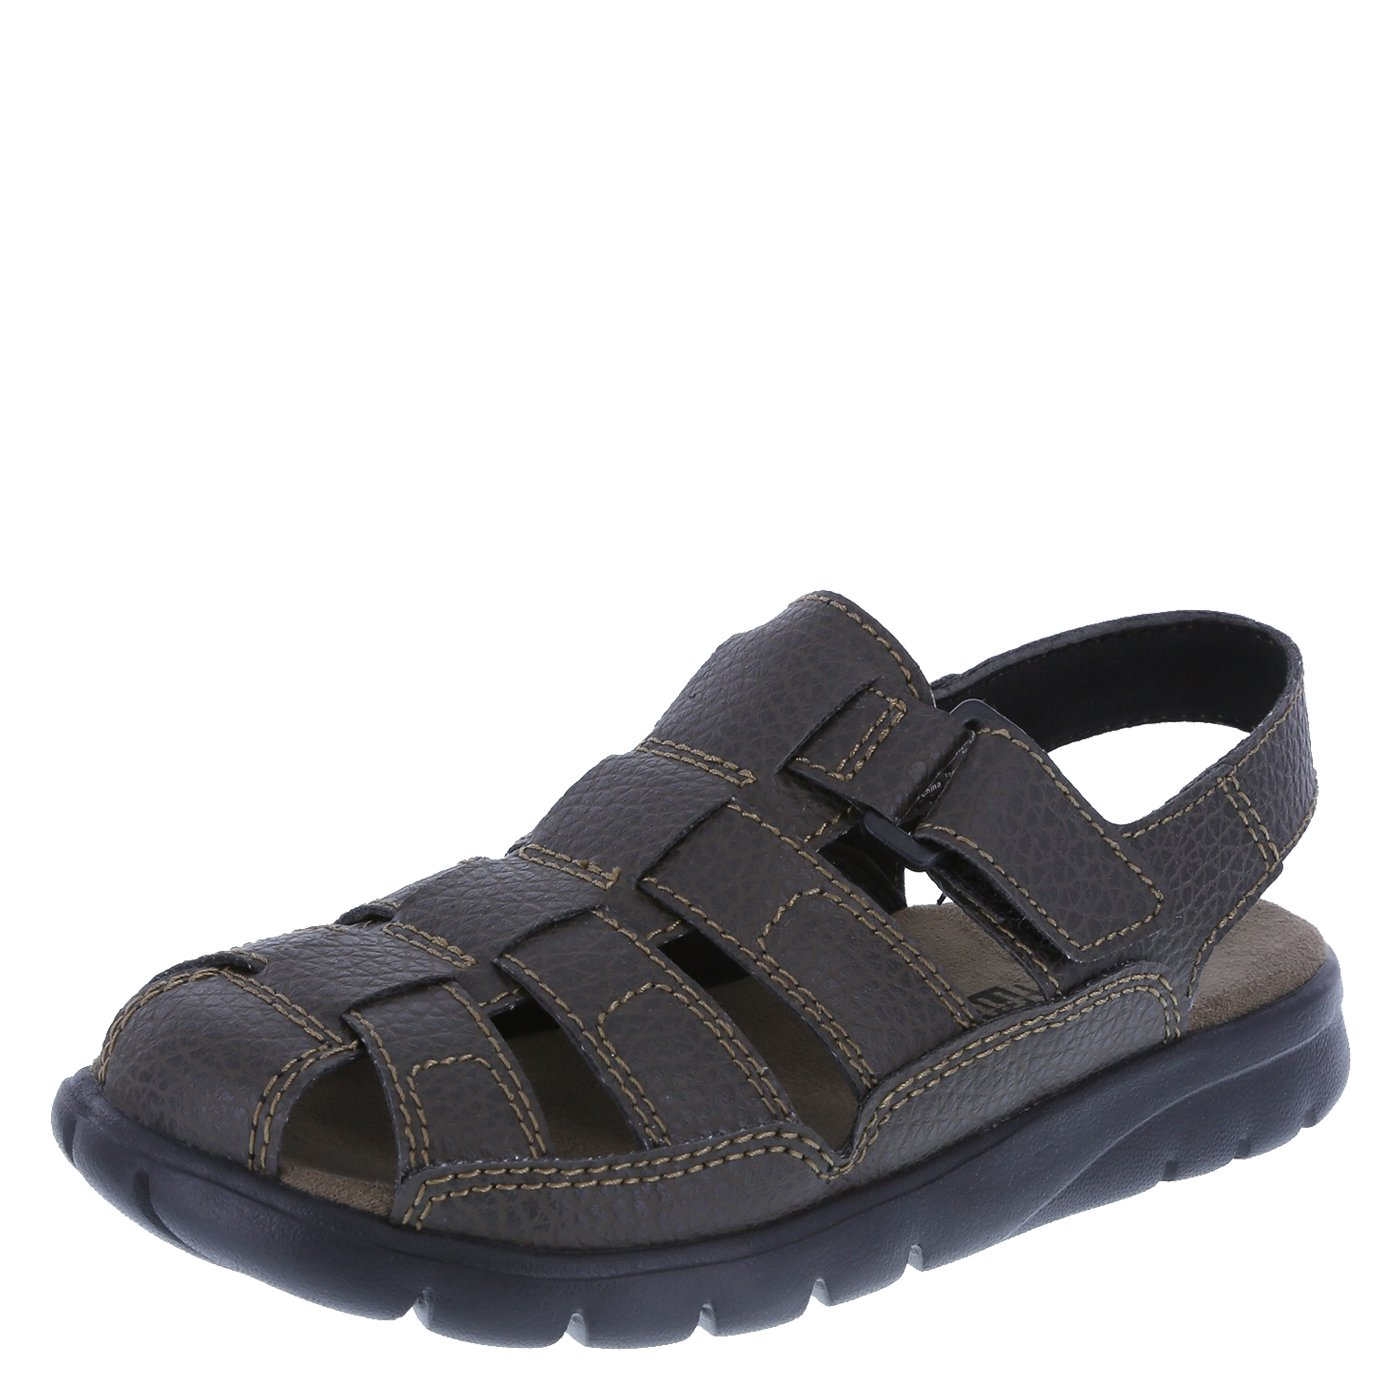 SmartFit Boys' Livingston Fisherman Sandal 068476-Parent